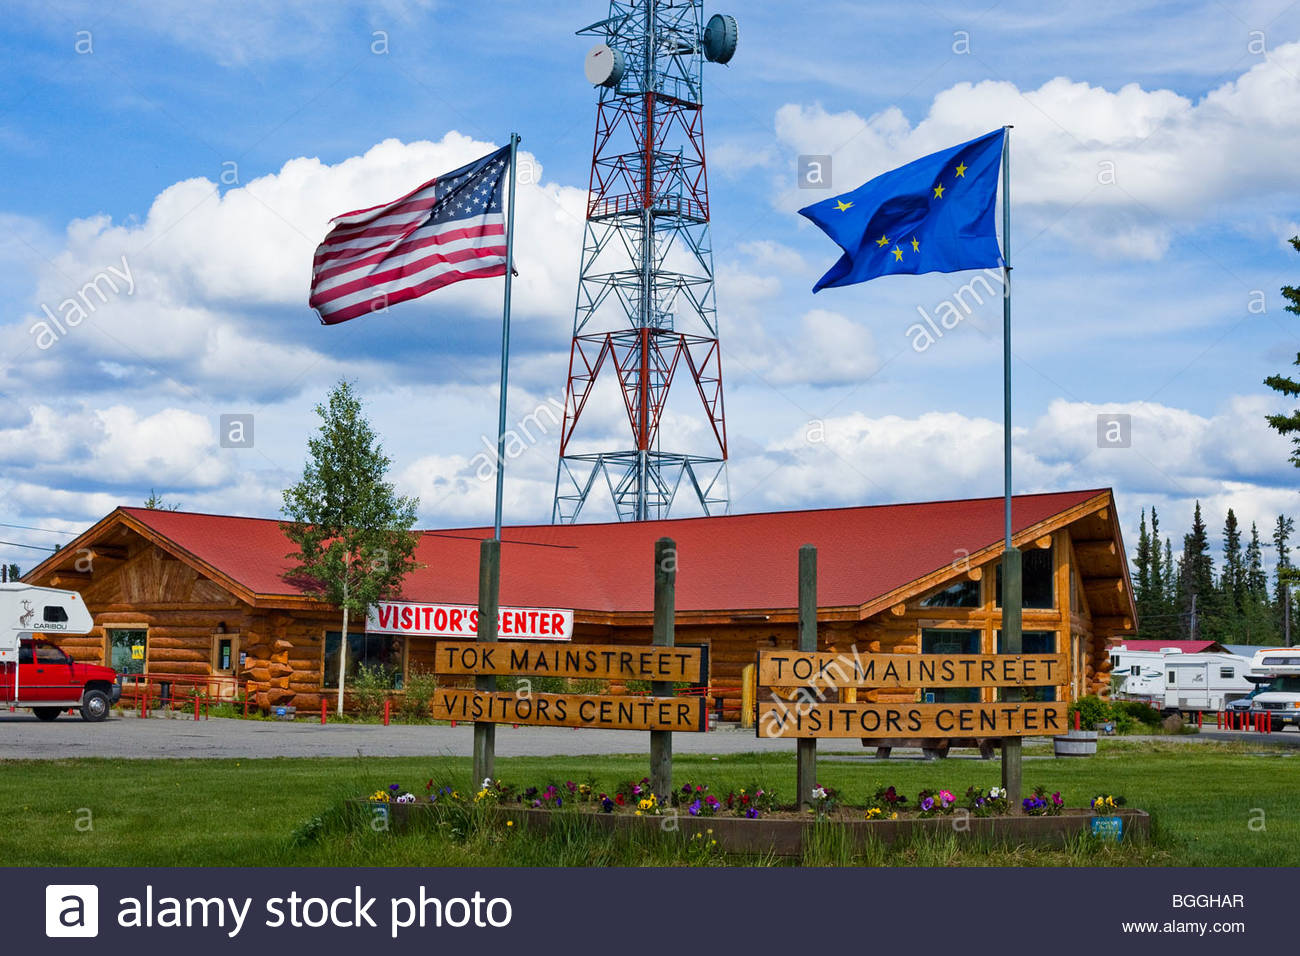 Alaska, Tok. Visitor's Center. Stock Photo